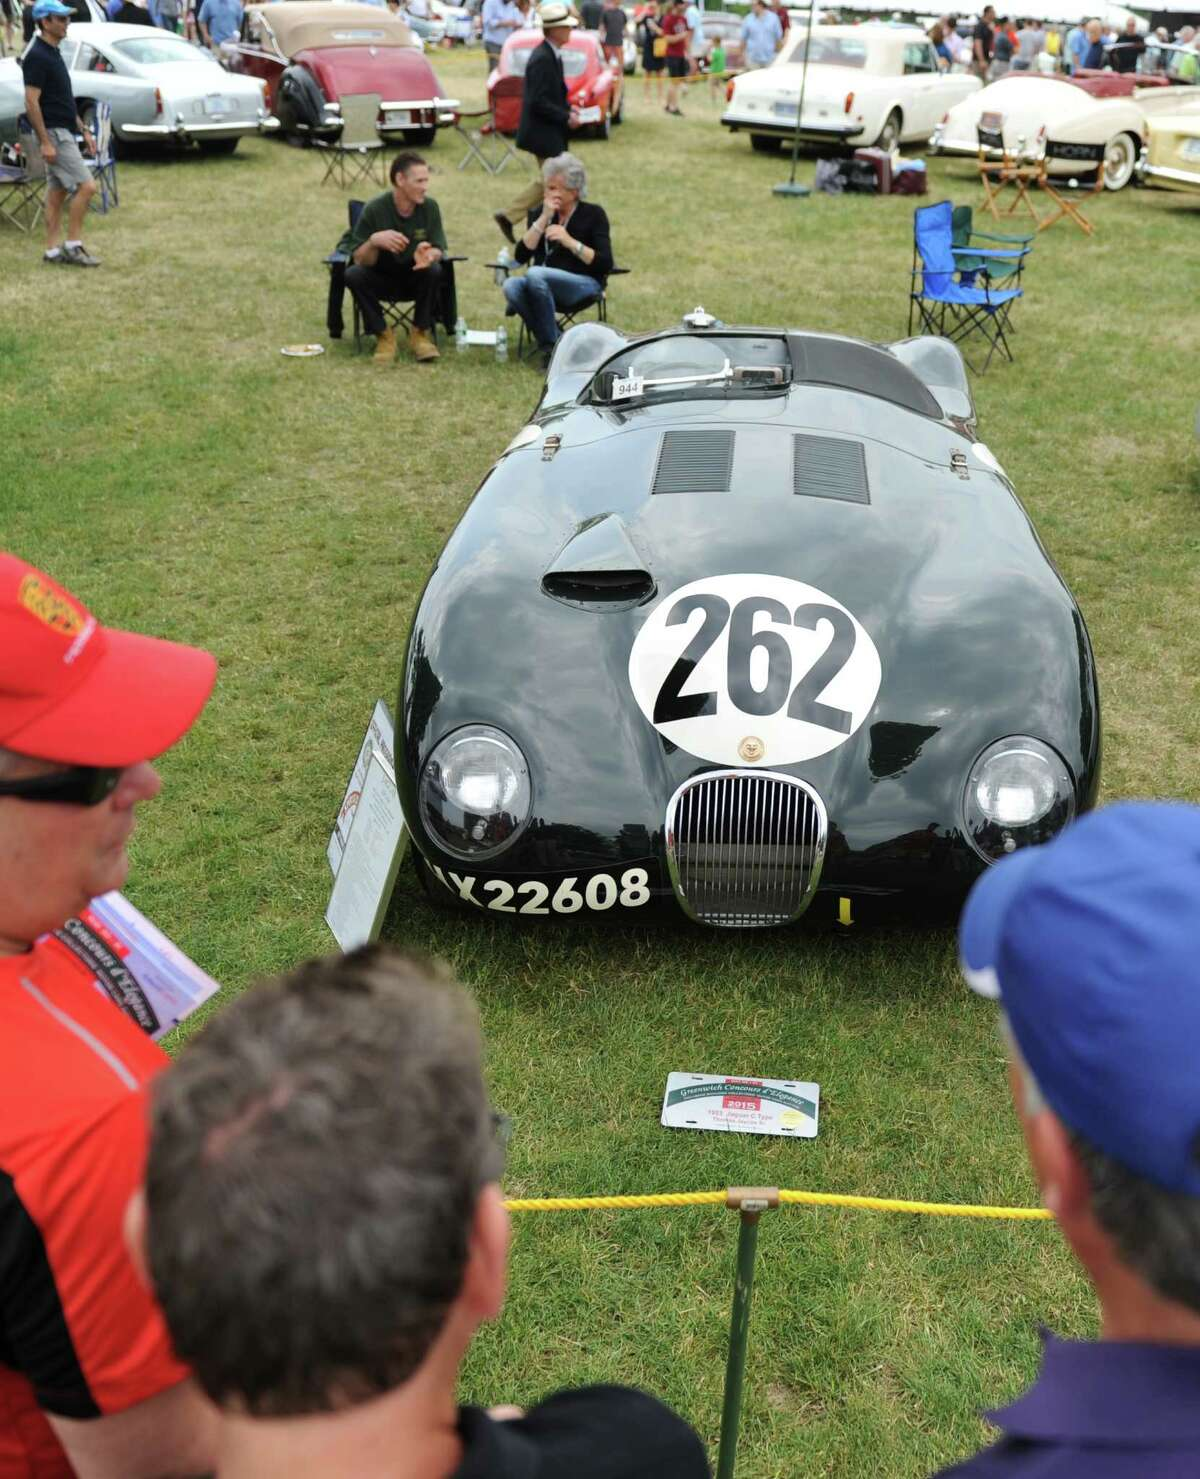 Folks look at a 1953 Jaguar C Type racecar during the second day of the Concours d'Elegance car show at Roger Sherman Baldwin Park in Greenwich, Conn. Sunday, May 31, 2015. The 20th annual show featured an immense variety of vintage and modern cars with a focus on American vehicles the first day and international vehicles the second day. The display included sports, touring and competition cars, many of which are one of a kind, limited production or custom-built for celebrities.